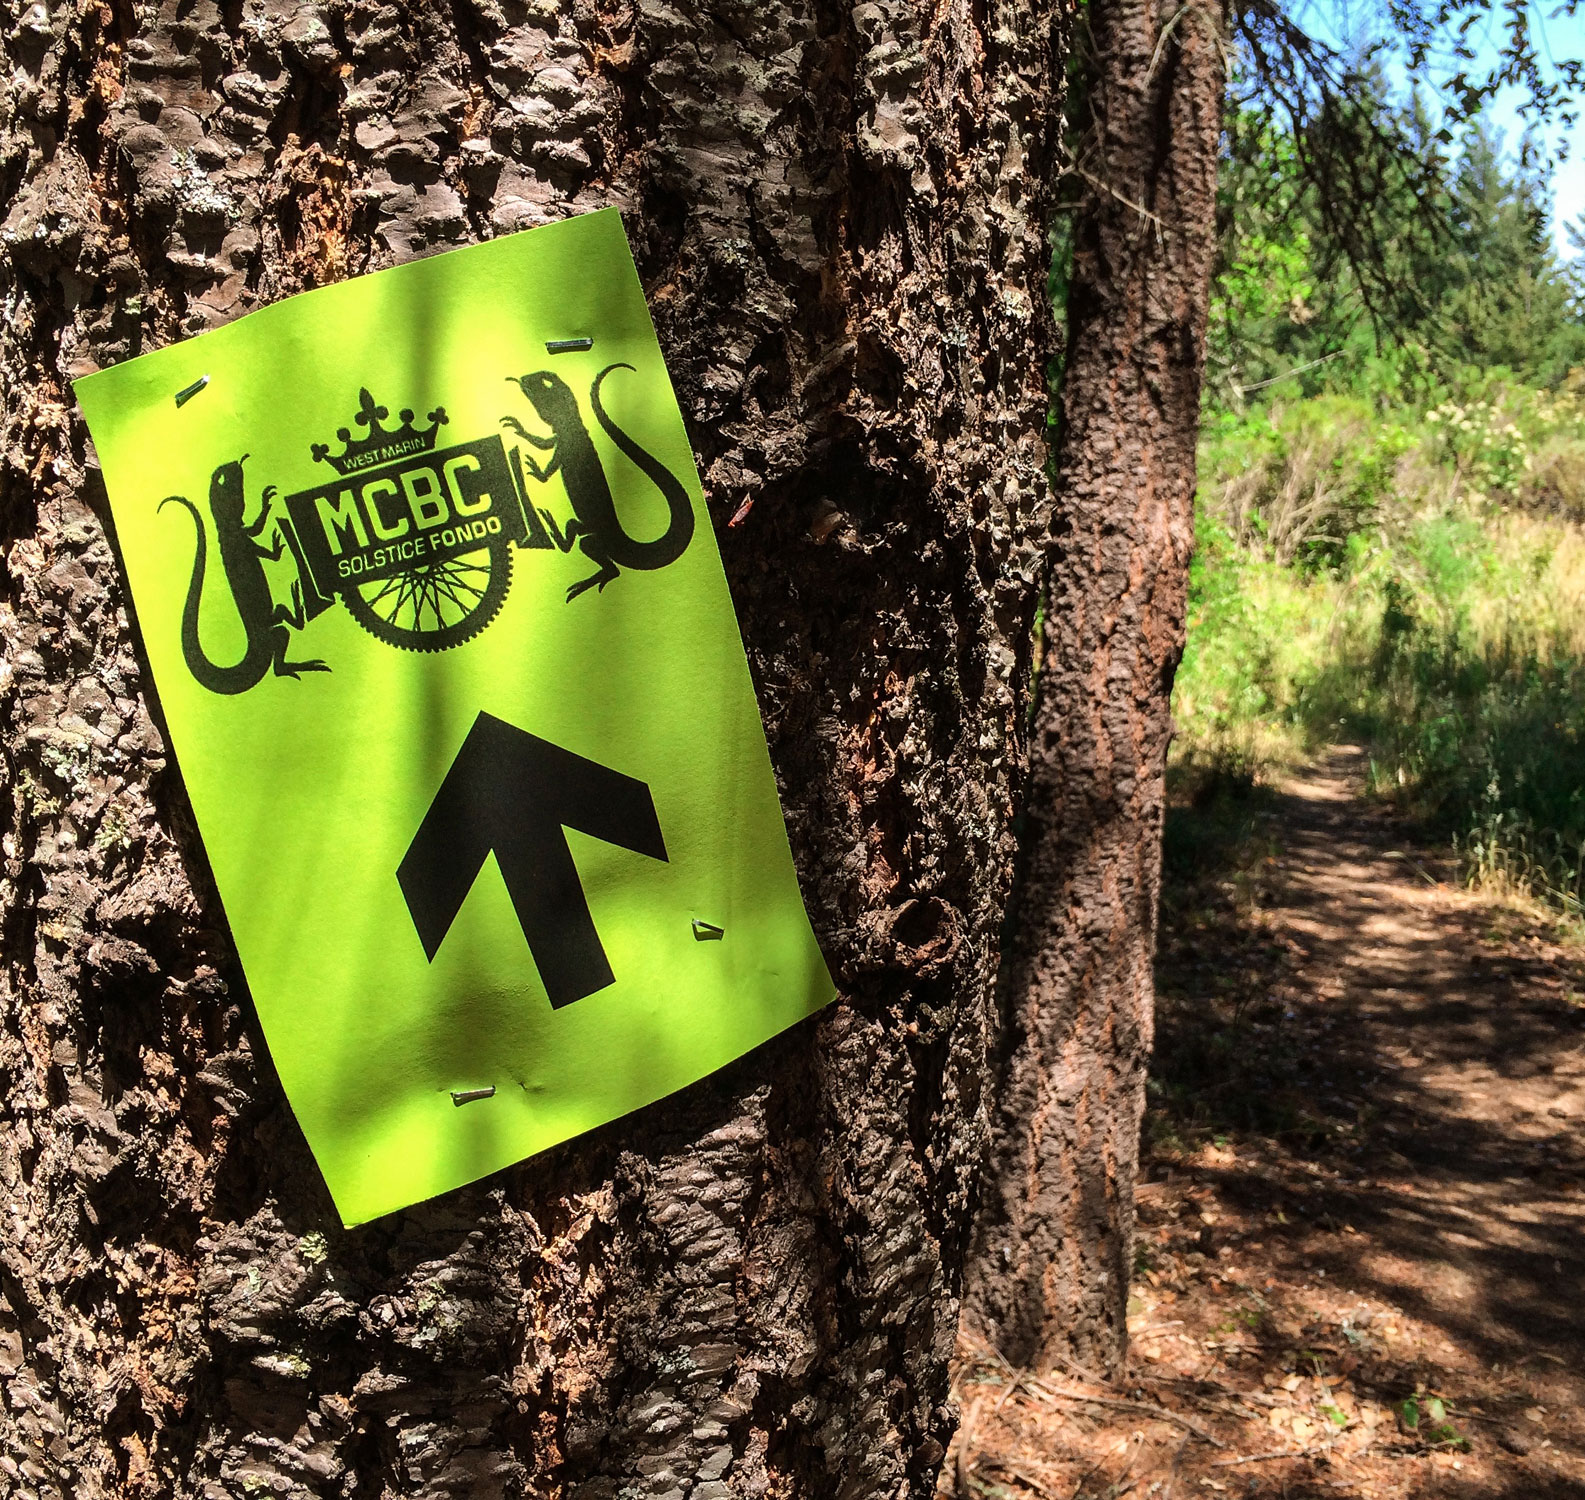 Trail directional with Dirt Fondo logo stapled to tree